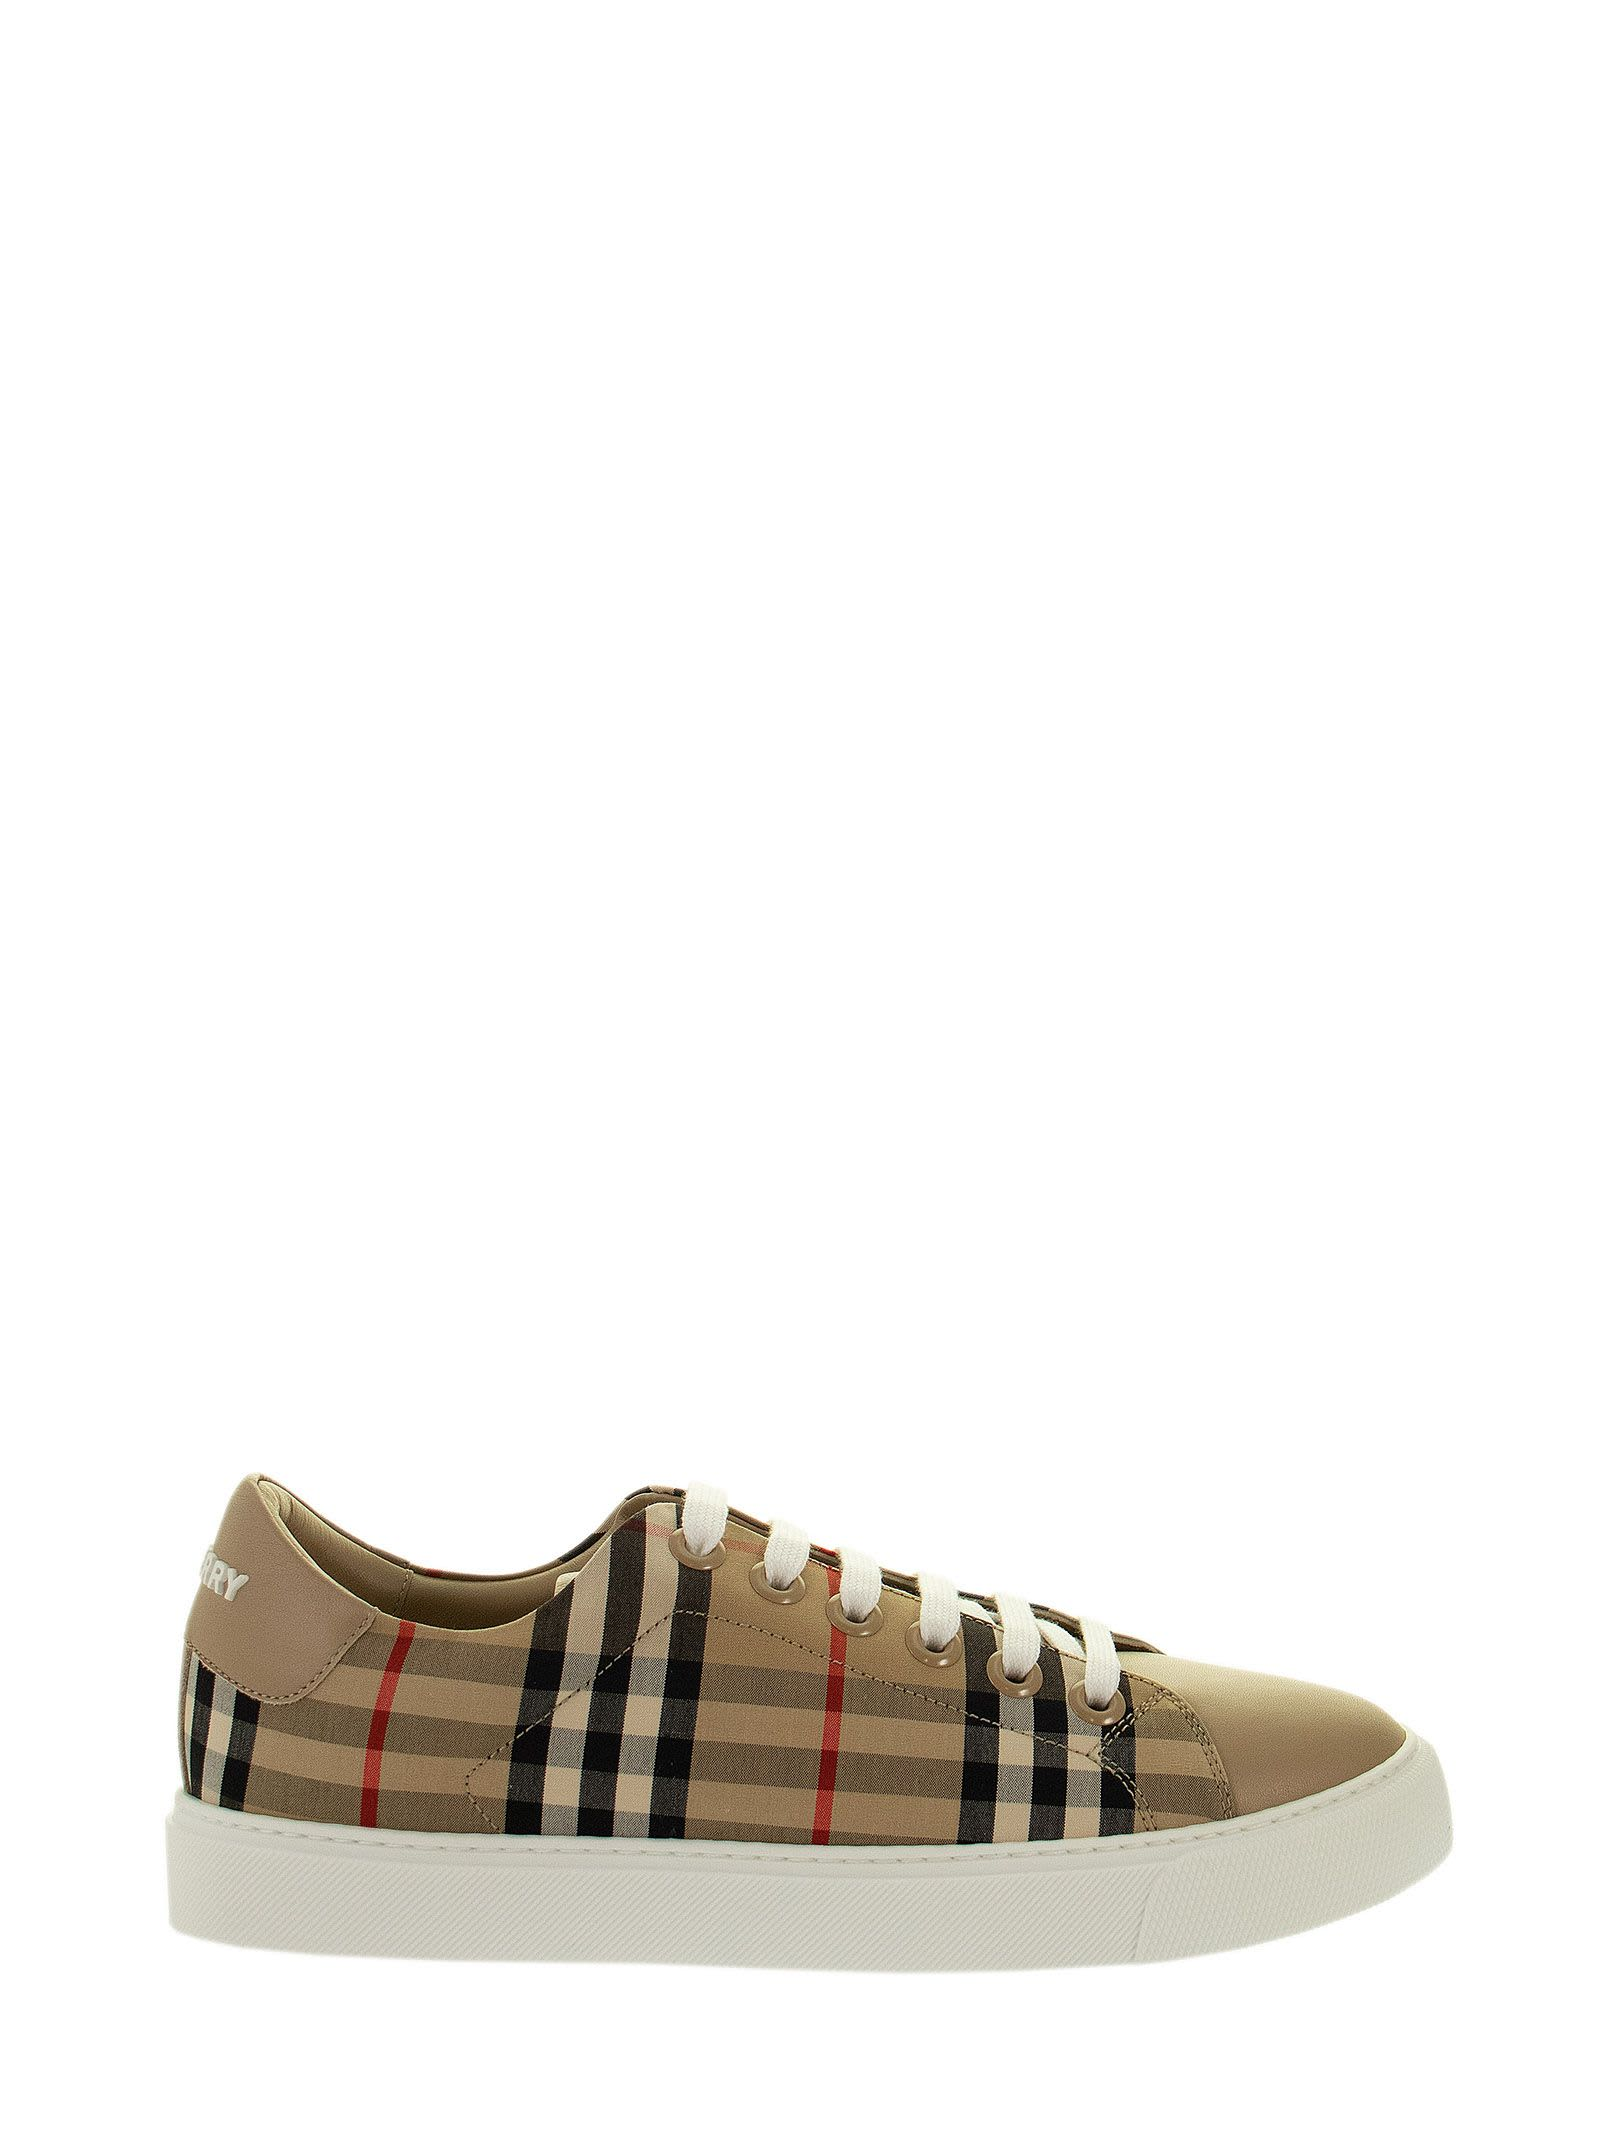 Buy Burberry Albridge L - Trainer With Vintage Check Pattern And Leather Inserts online, shop Burberry shoes with free shipping